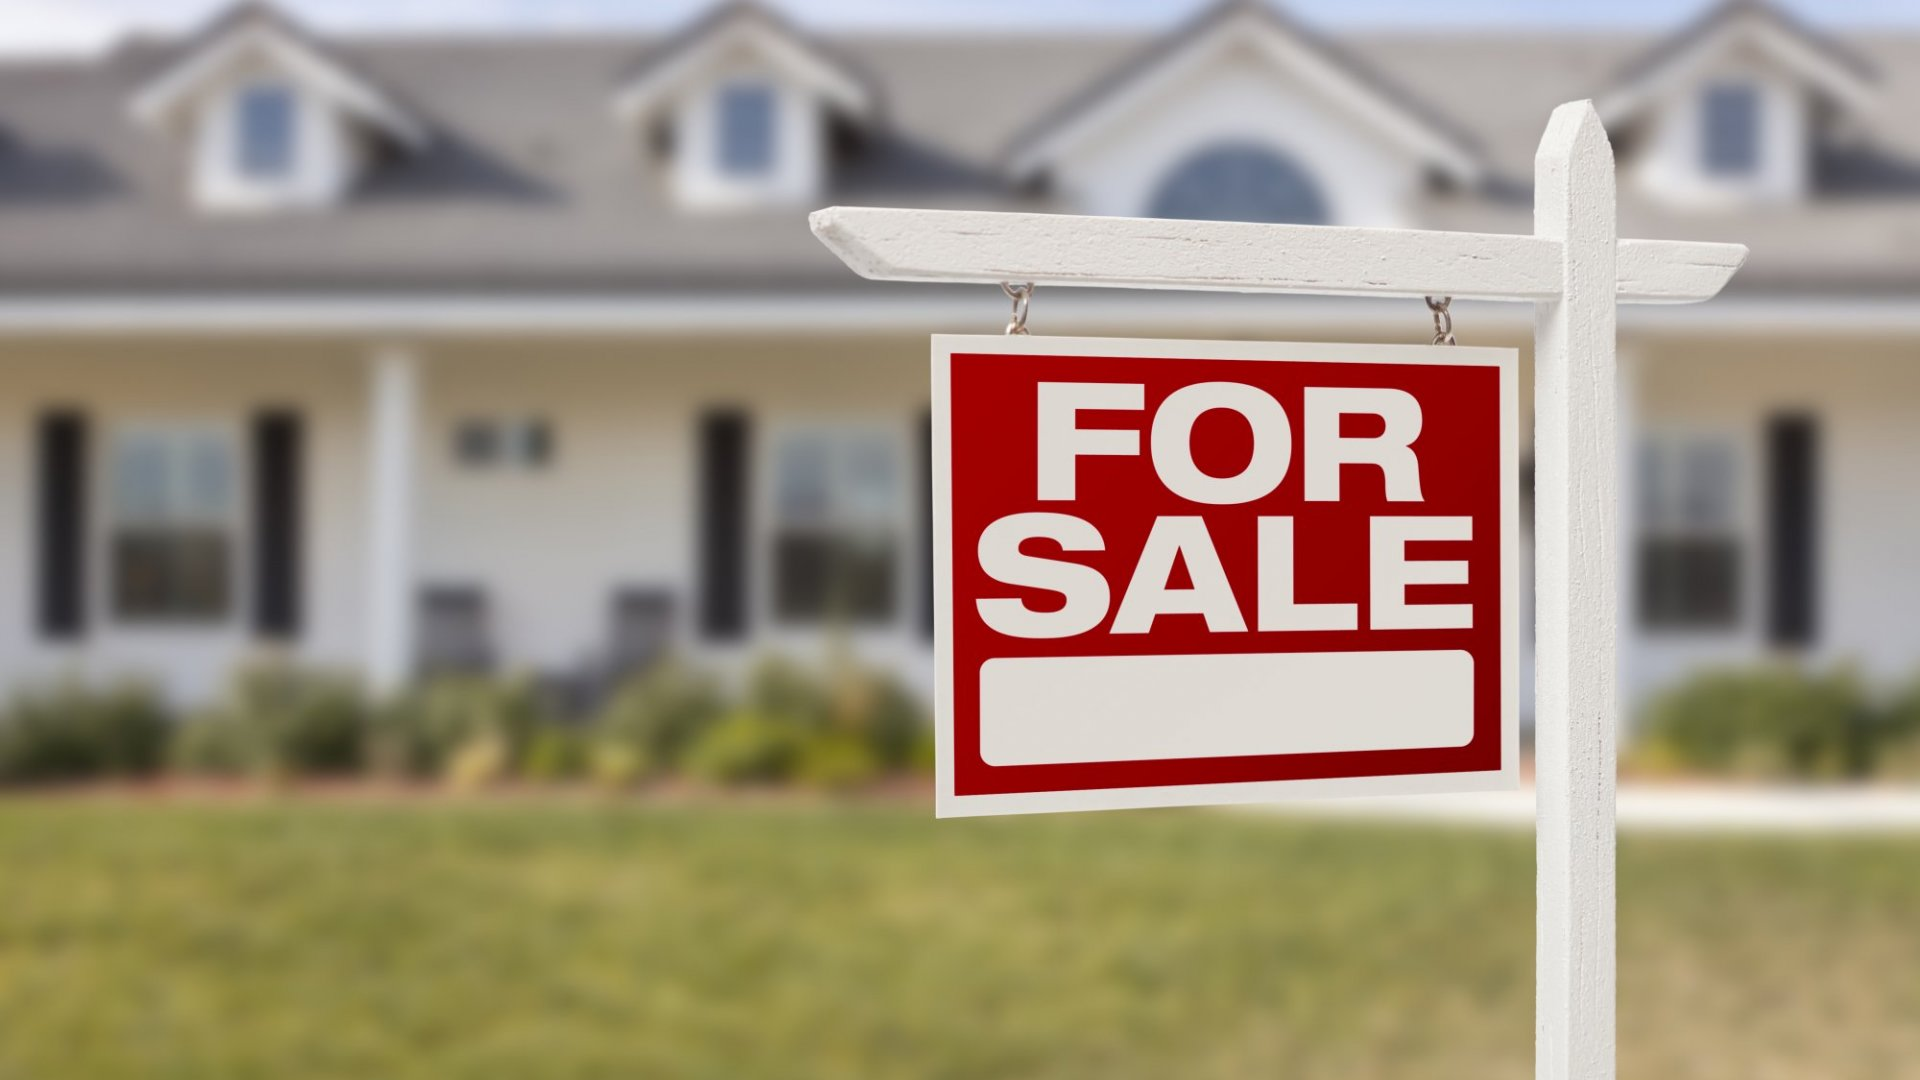 Has The Tax Bill Hurt Your Home's Value? This Handy Calculator Will (Ouch!) Tell